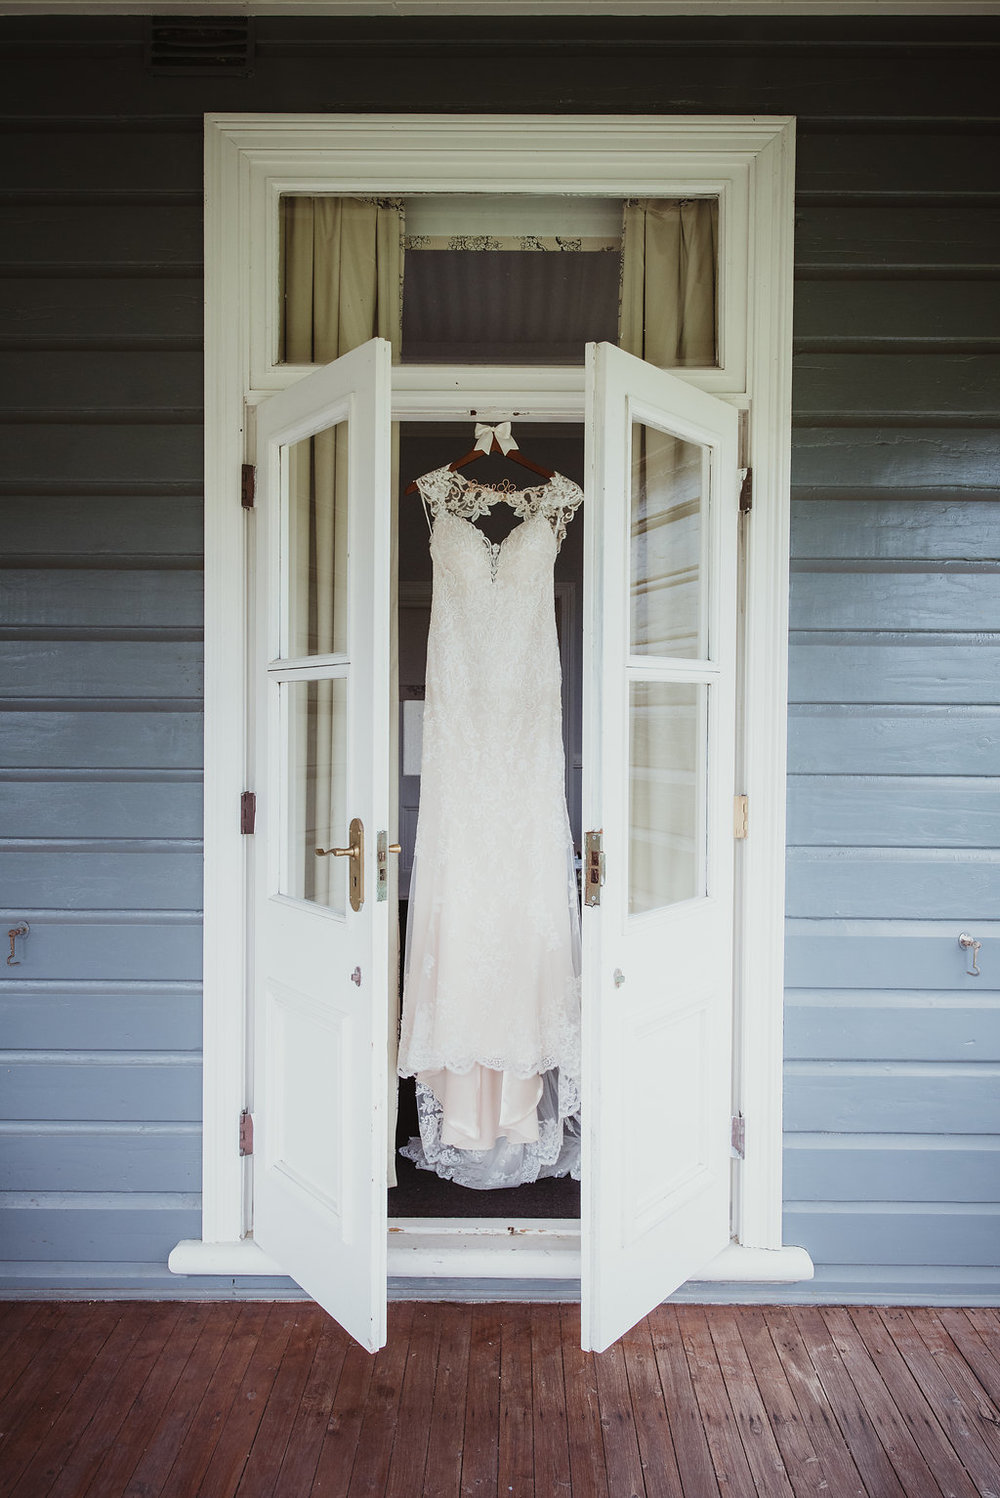 Brides Wedding Gown - Wedding Planning Hunter Valley